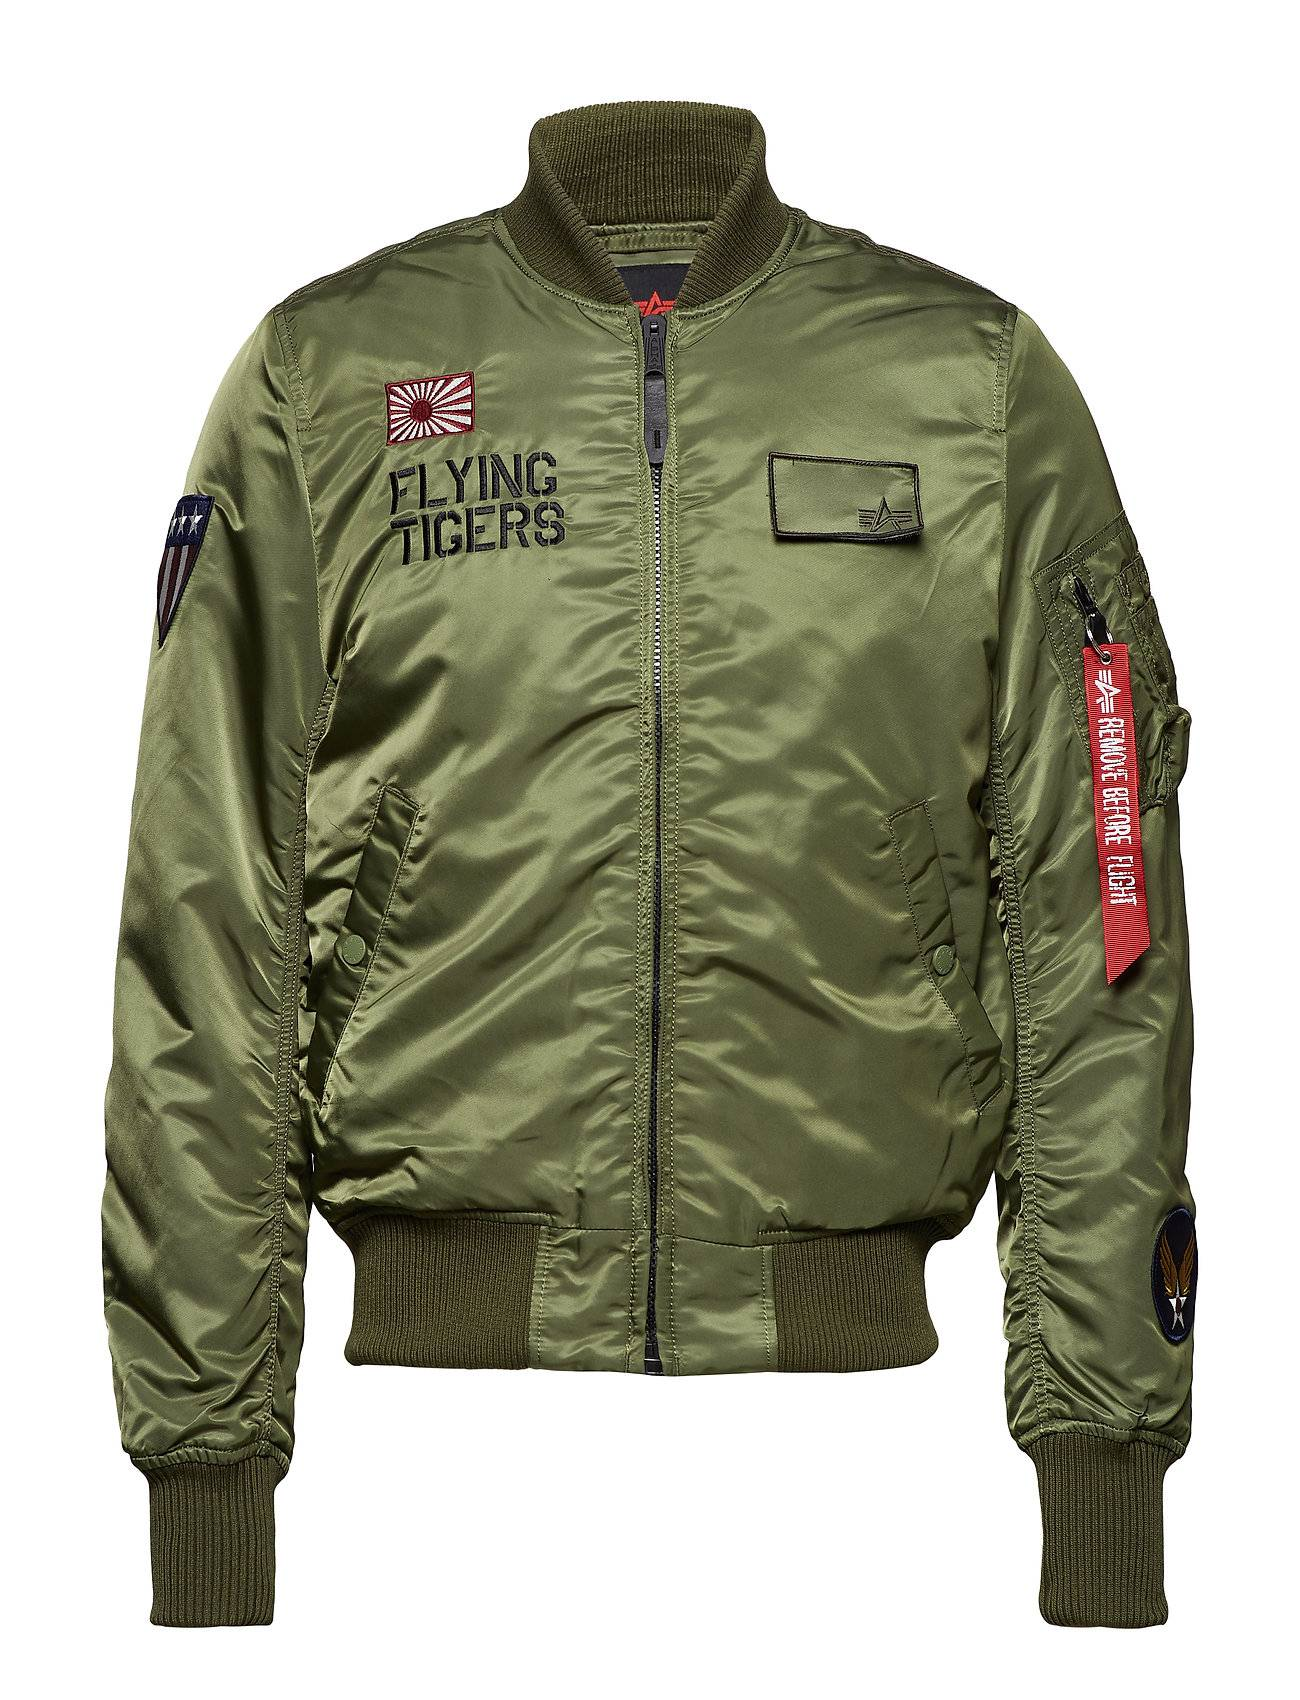 Alpha Industries Ma-1 Vf Flying Tigers